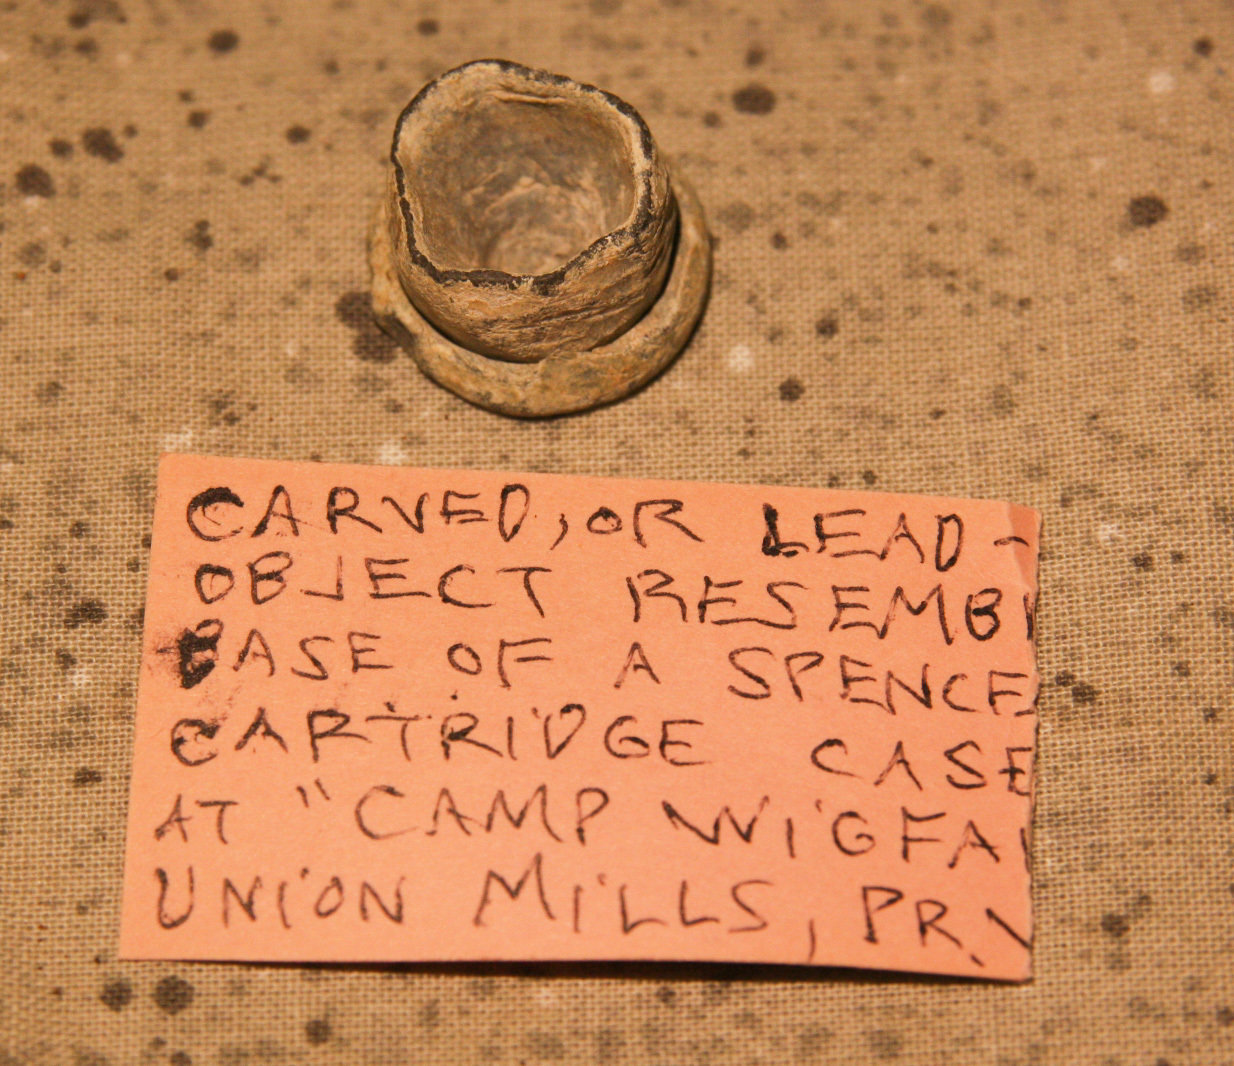 JUST ADDED ON 5/16 - CONFEDERATE CAMP WIGFALL, MANASSAS, VIRGINIA - Unusual Carved Bullet / Lead Item with Relic Hunter's Original Label A-HS05